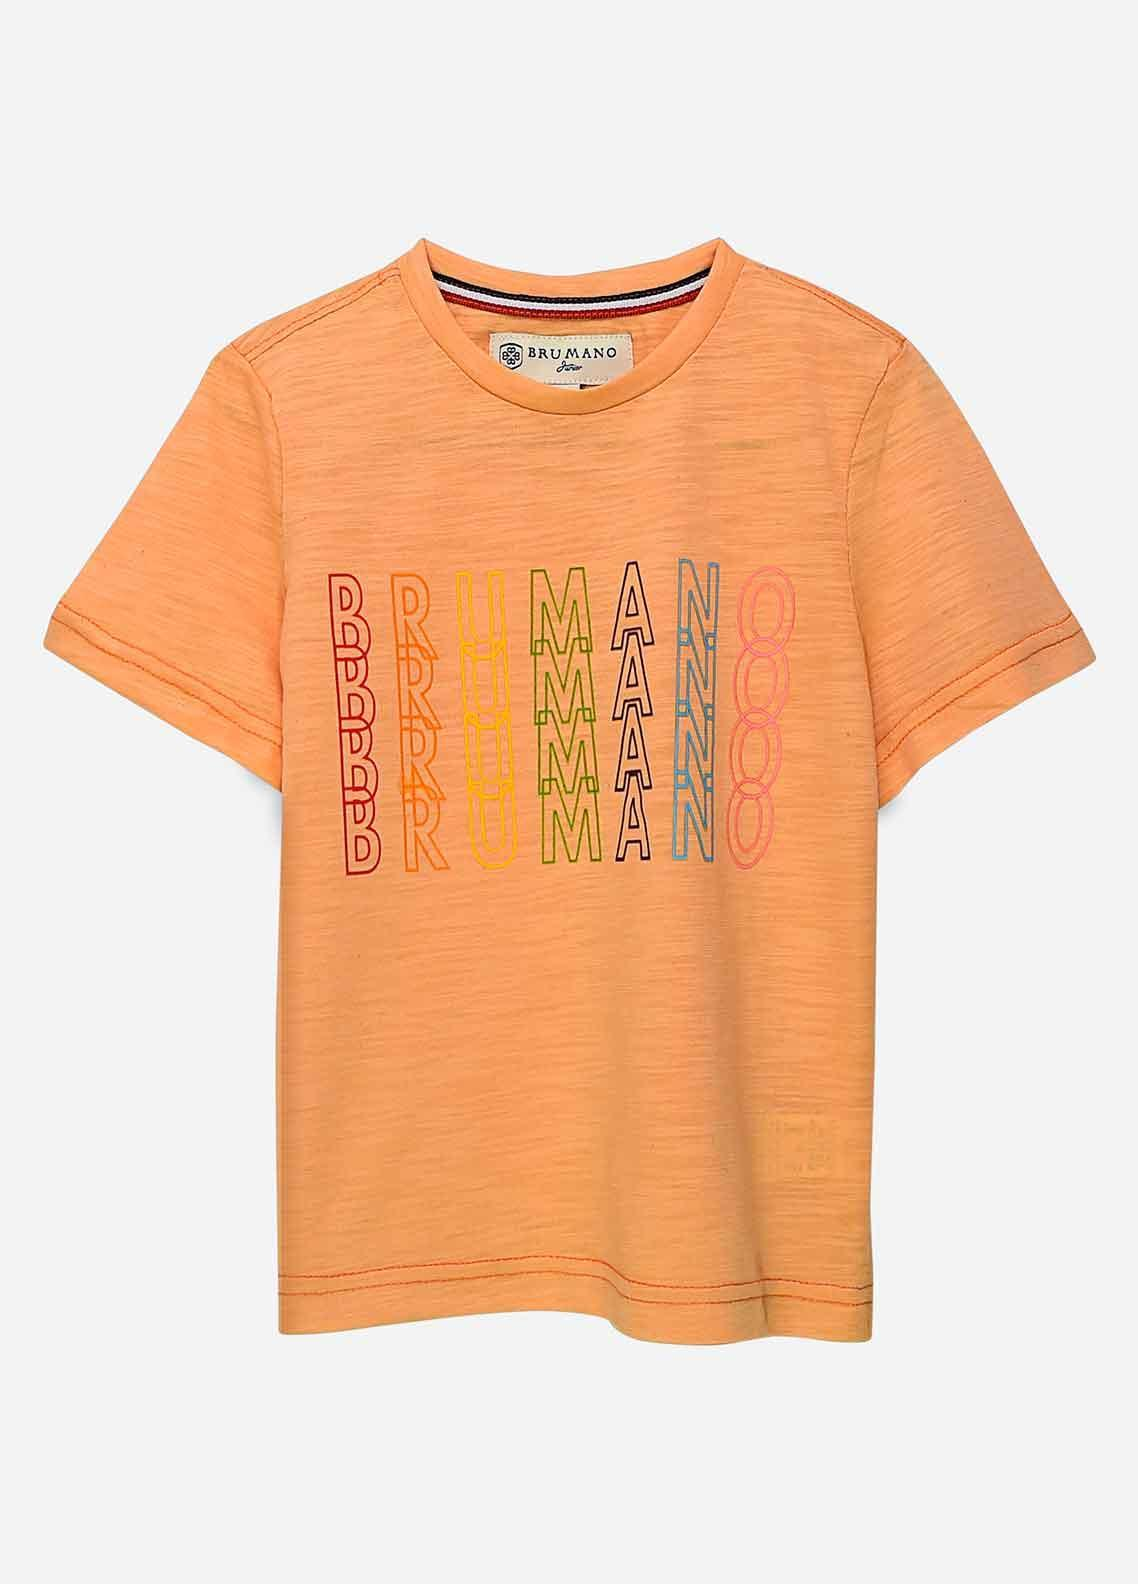 Brumano Cotton Casual T-Shirts for Boys -  BRM21JS Orange Printed